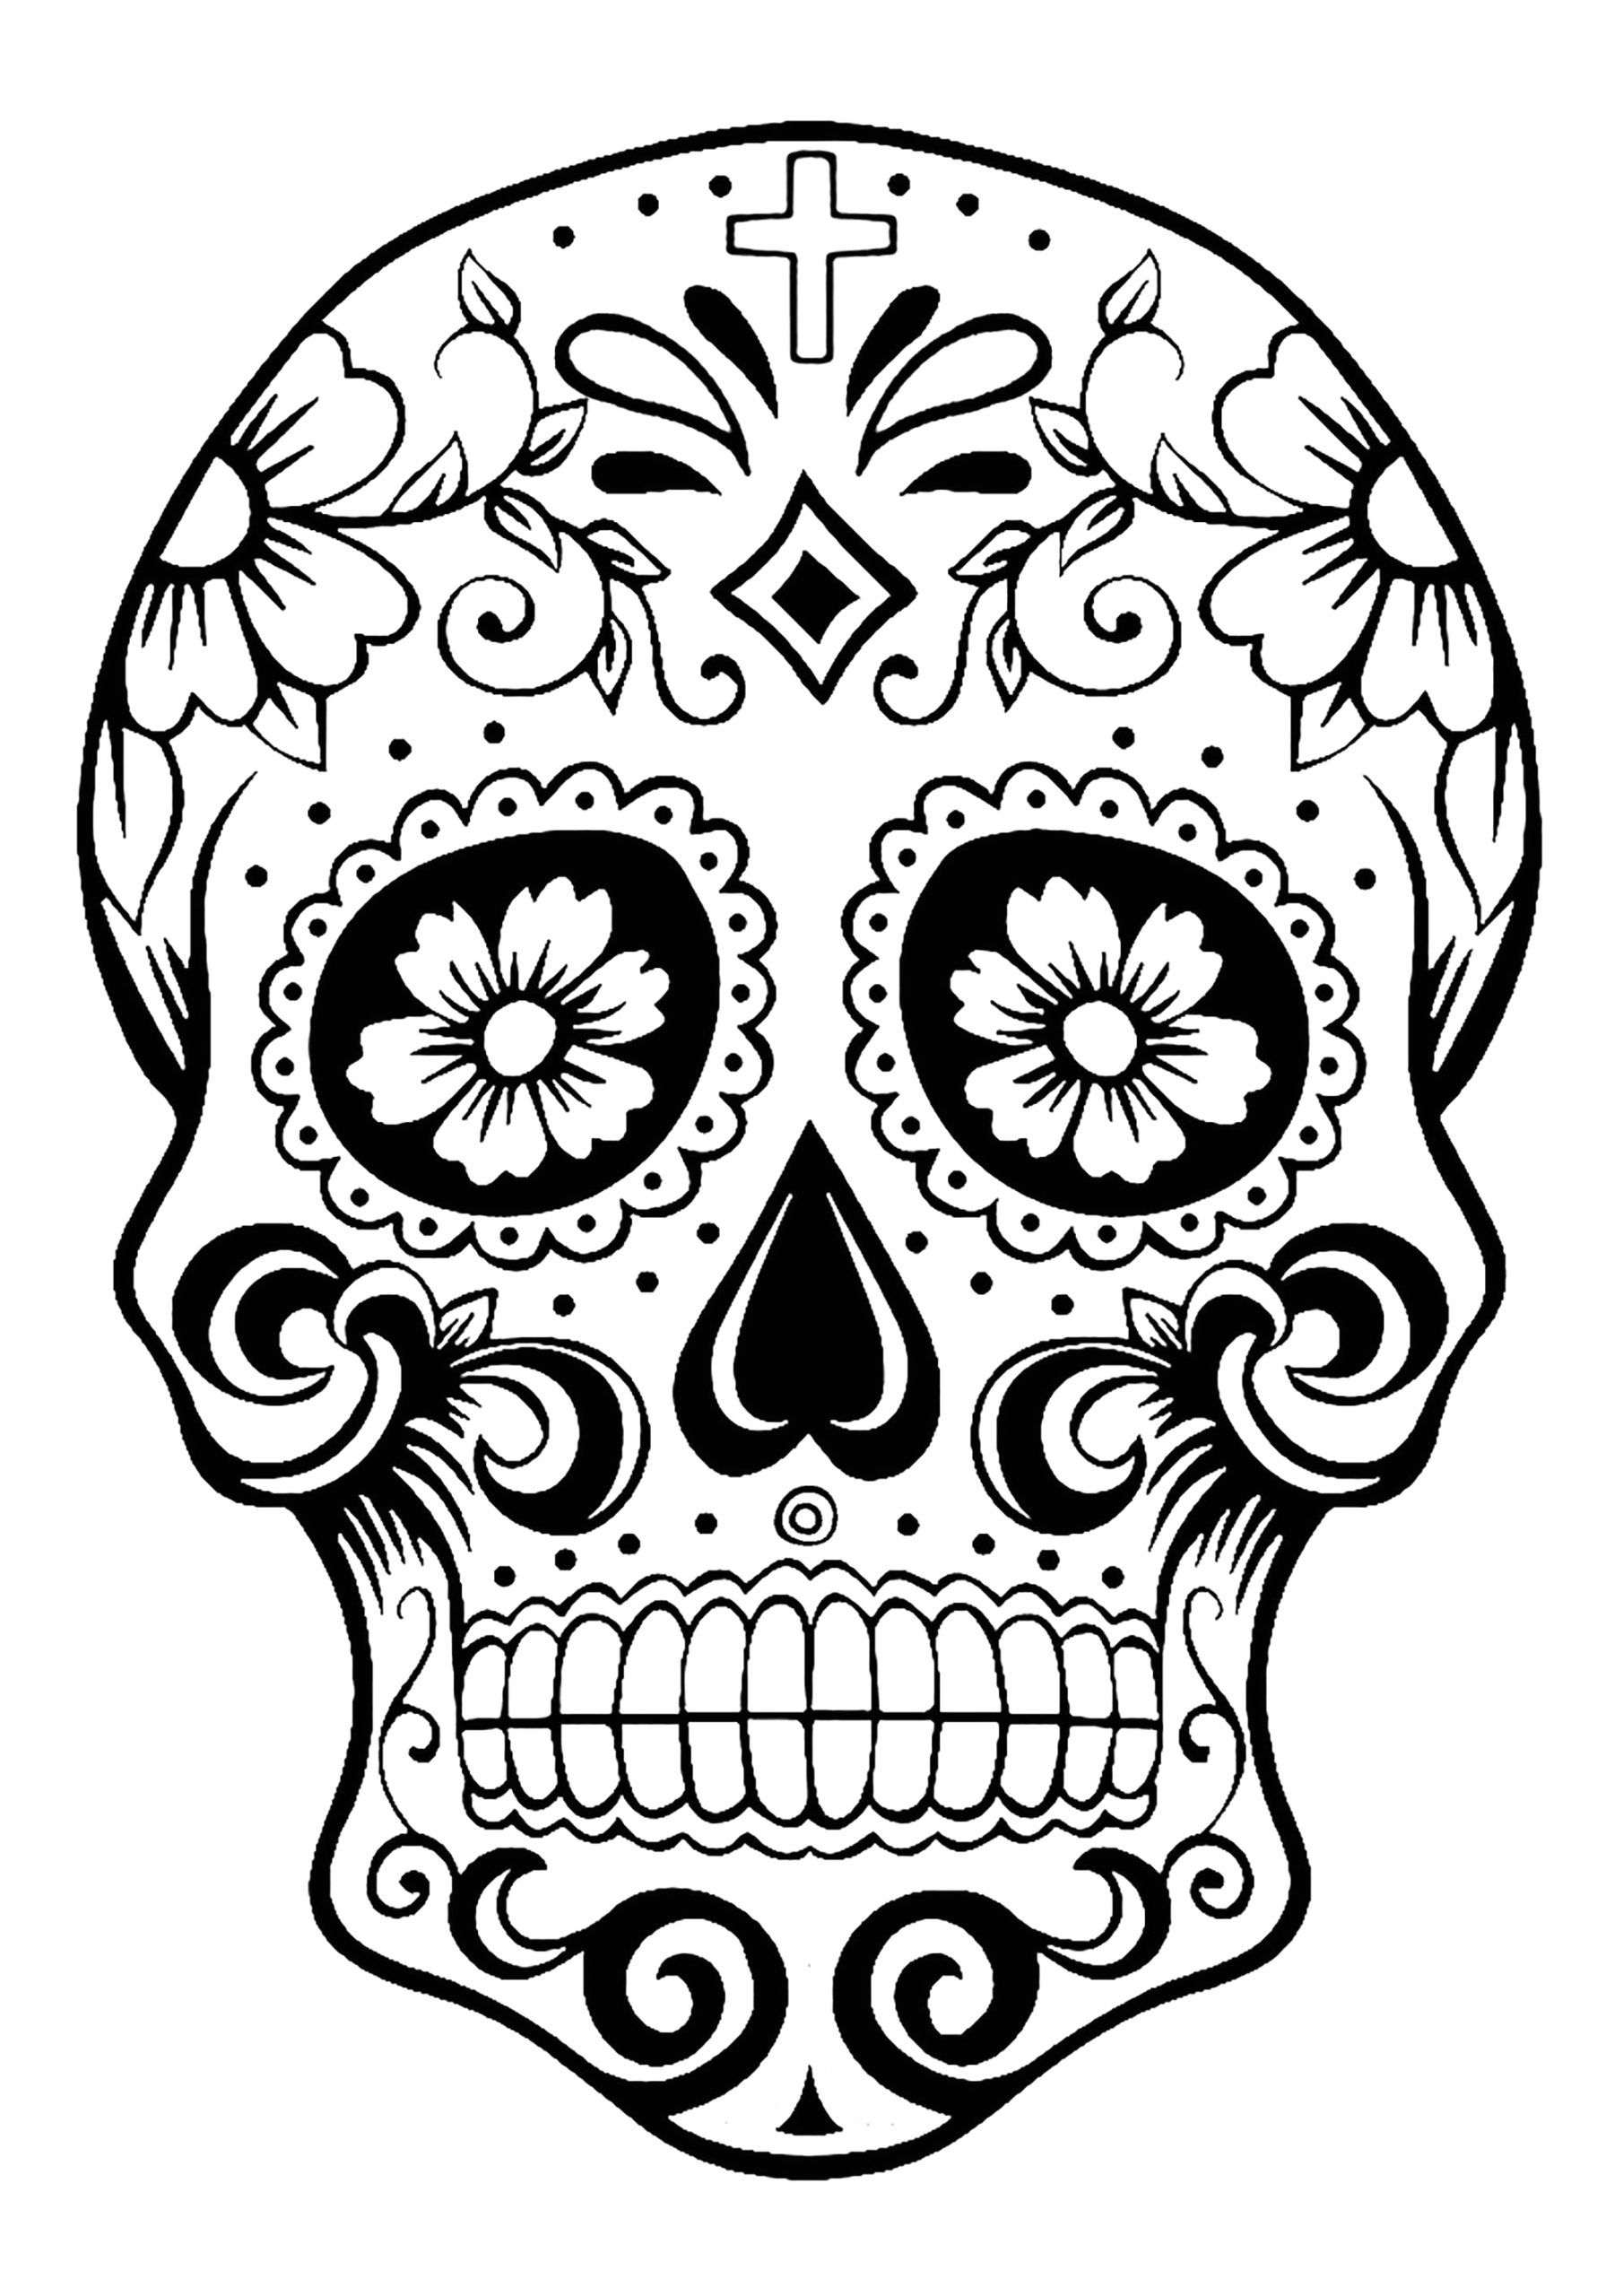 Dia De Los Muertos Skull Coloring Pages Skull Coloring Pages for Adults